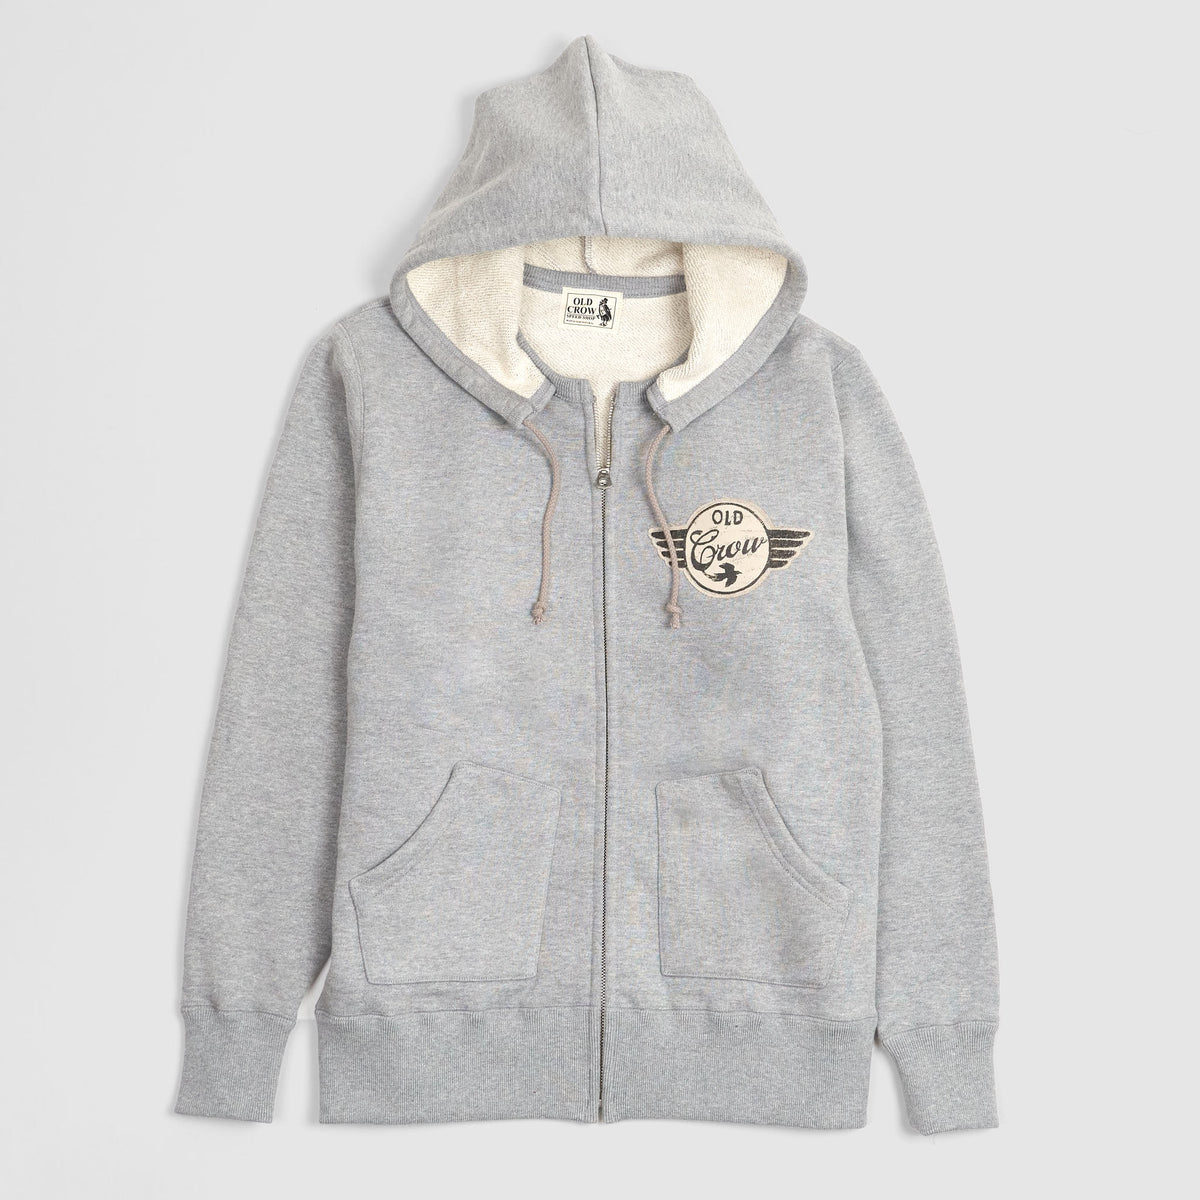 Old Crow Speed Shop by Glad Hand & Co. Zip Up Hooded Sweatshirt